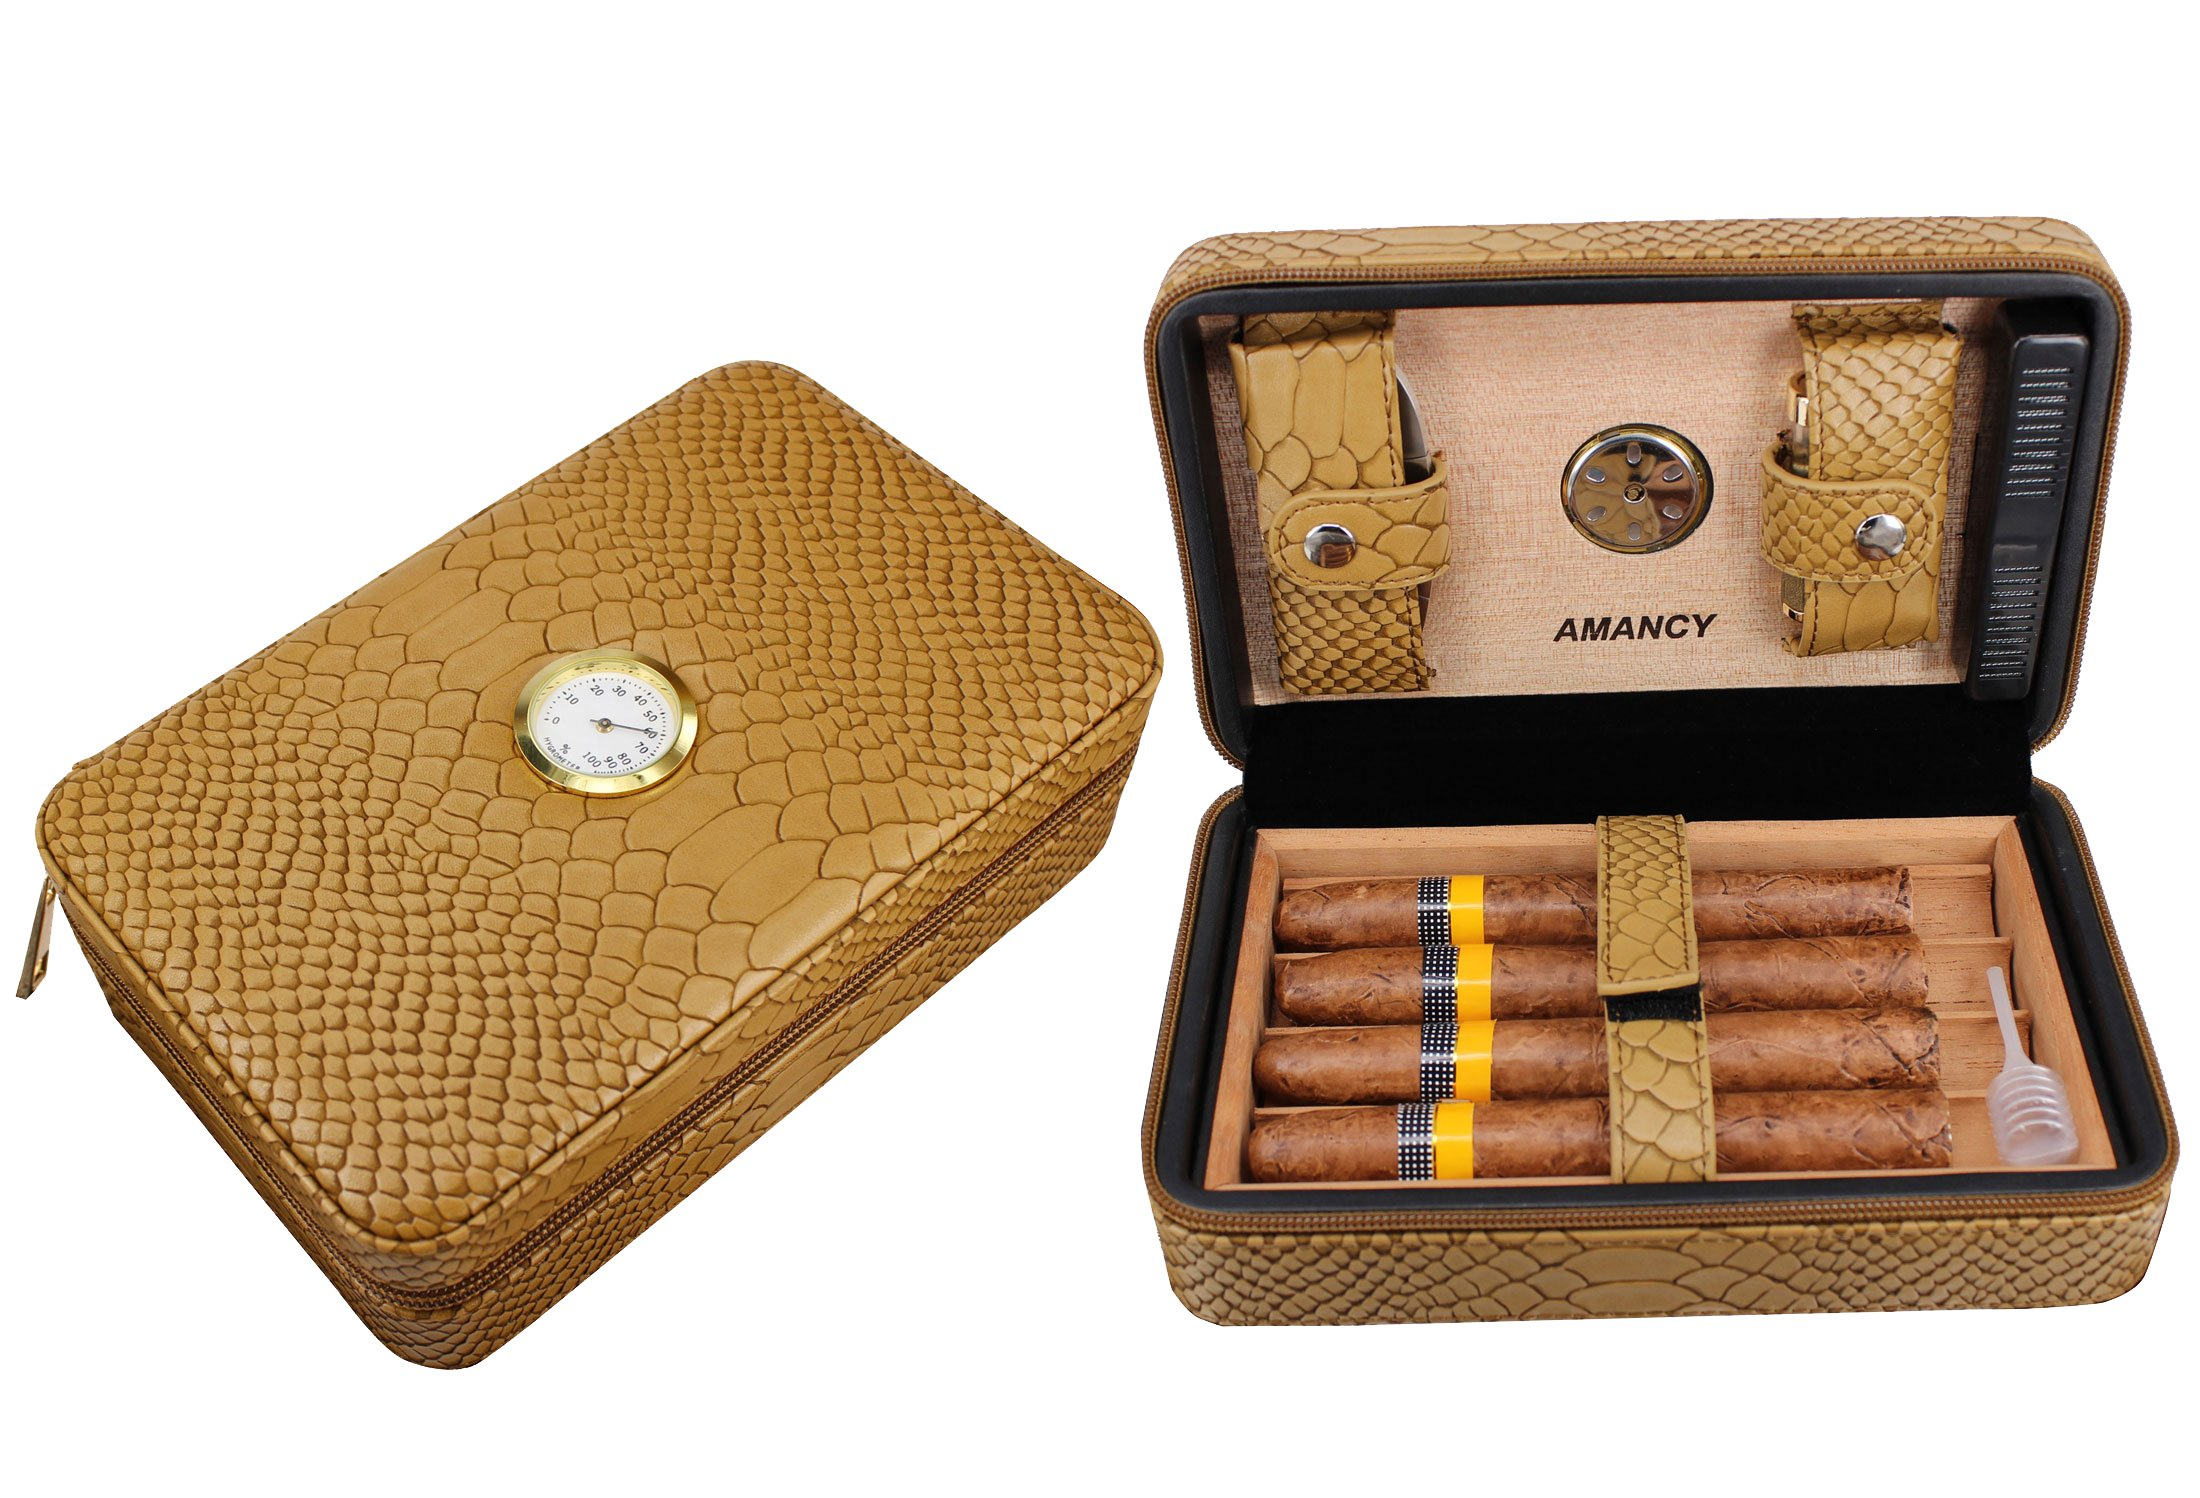 AMANCY Stylish Small Travel Cedar Wood Cigar Humidor, Portable Leather Cigar Case,Conveniently Carry Cutter and Lighter